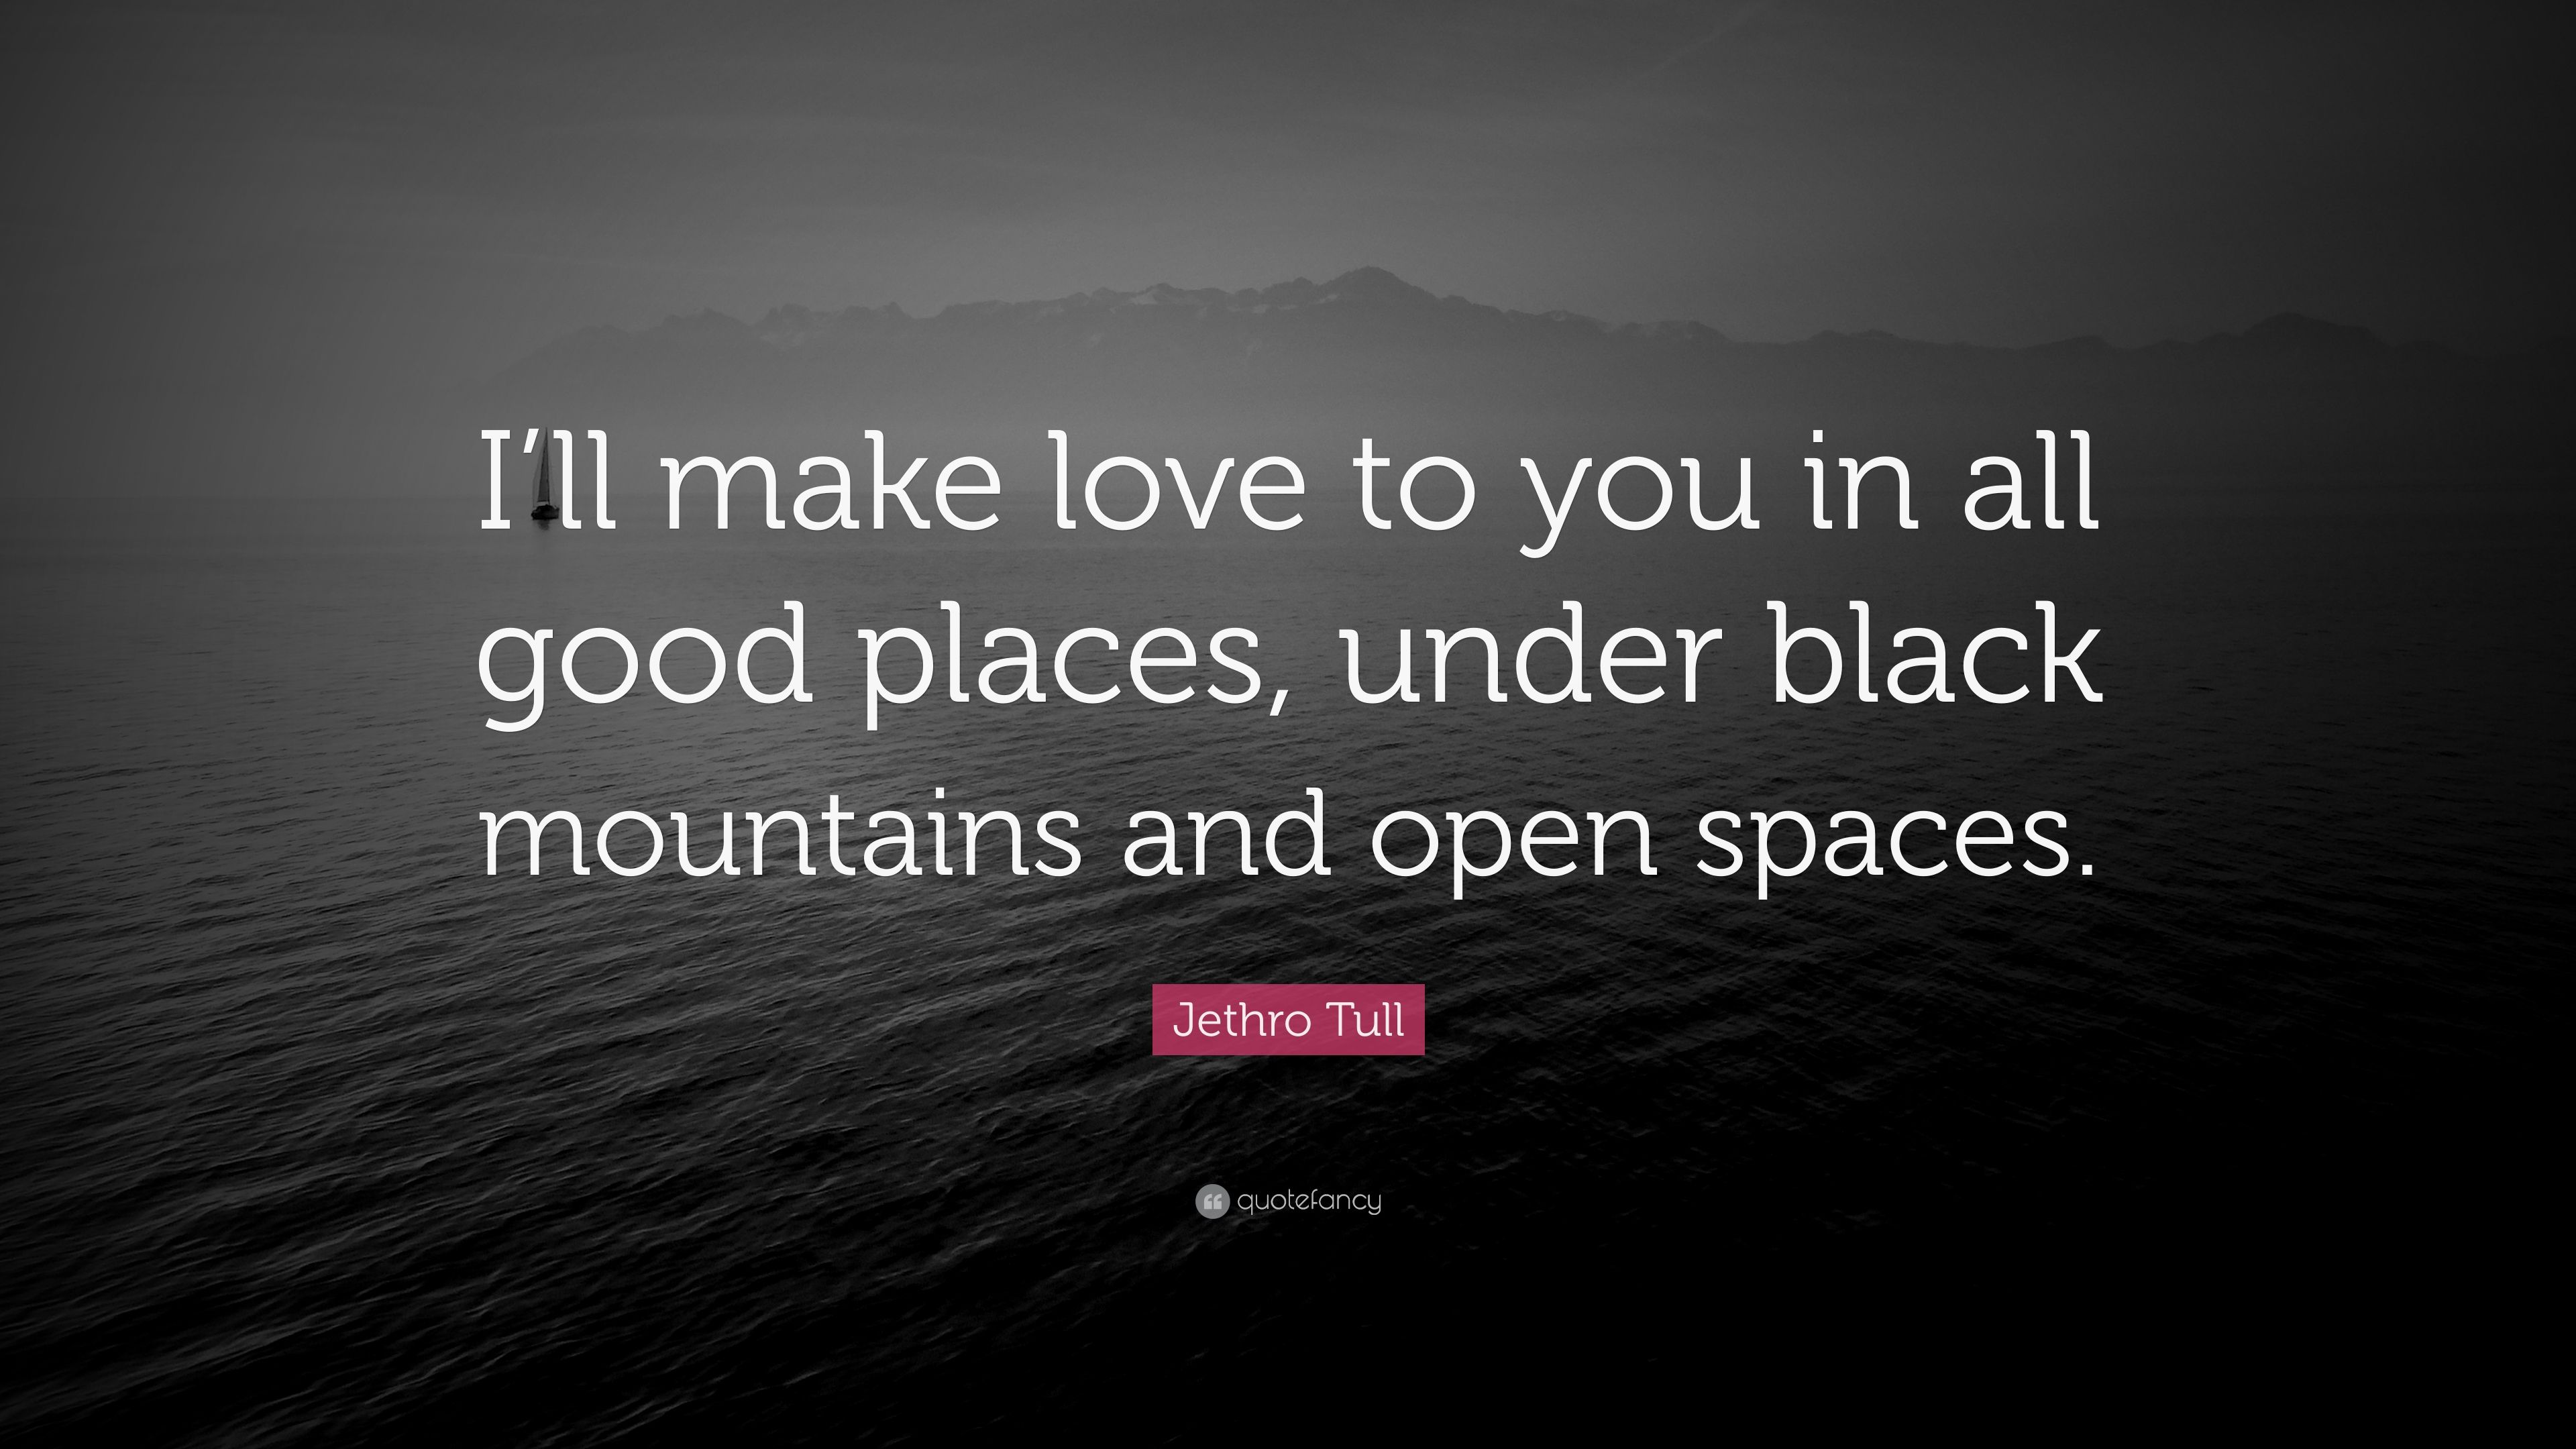 """I Want To Make Love To You Quotes Images Jethro Tull Quote """"I'll Make Love To You In All Good Places"""